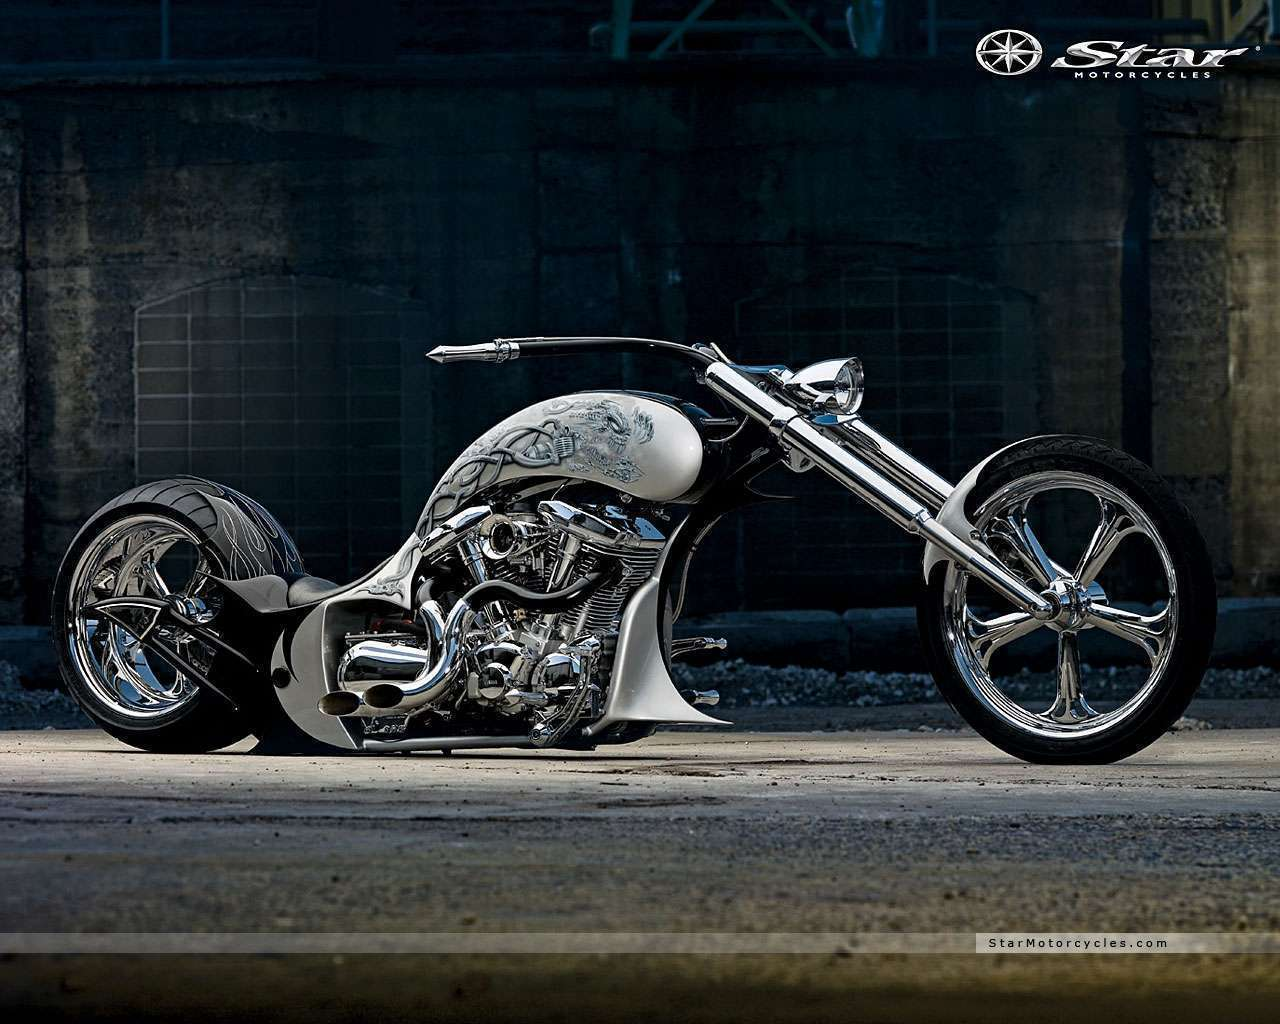 Cool custom bike wallpaper hd car wallpapers - Best wallpapers of cars and bikes ...